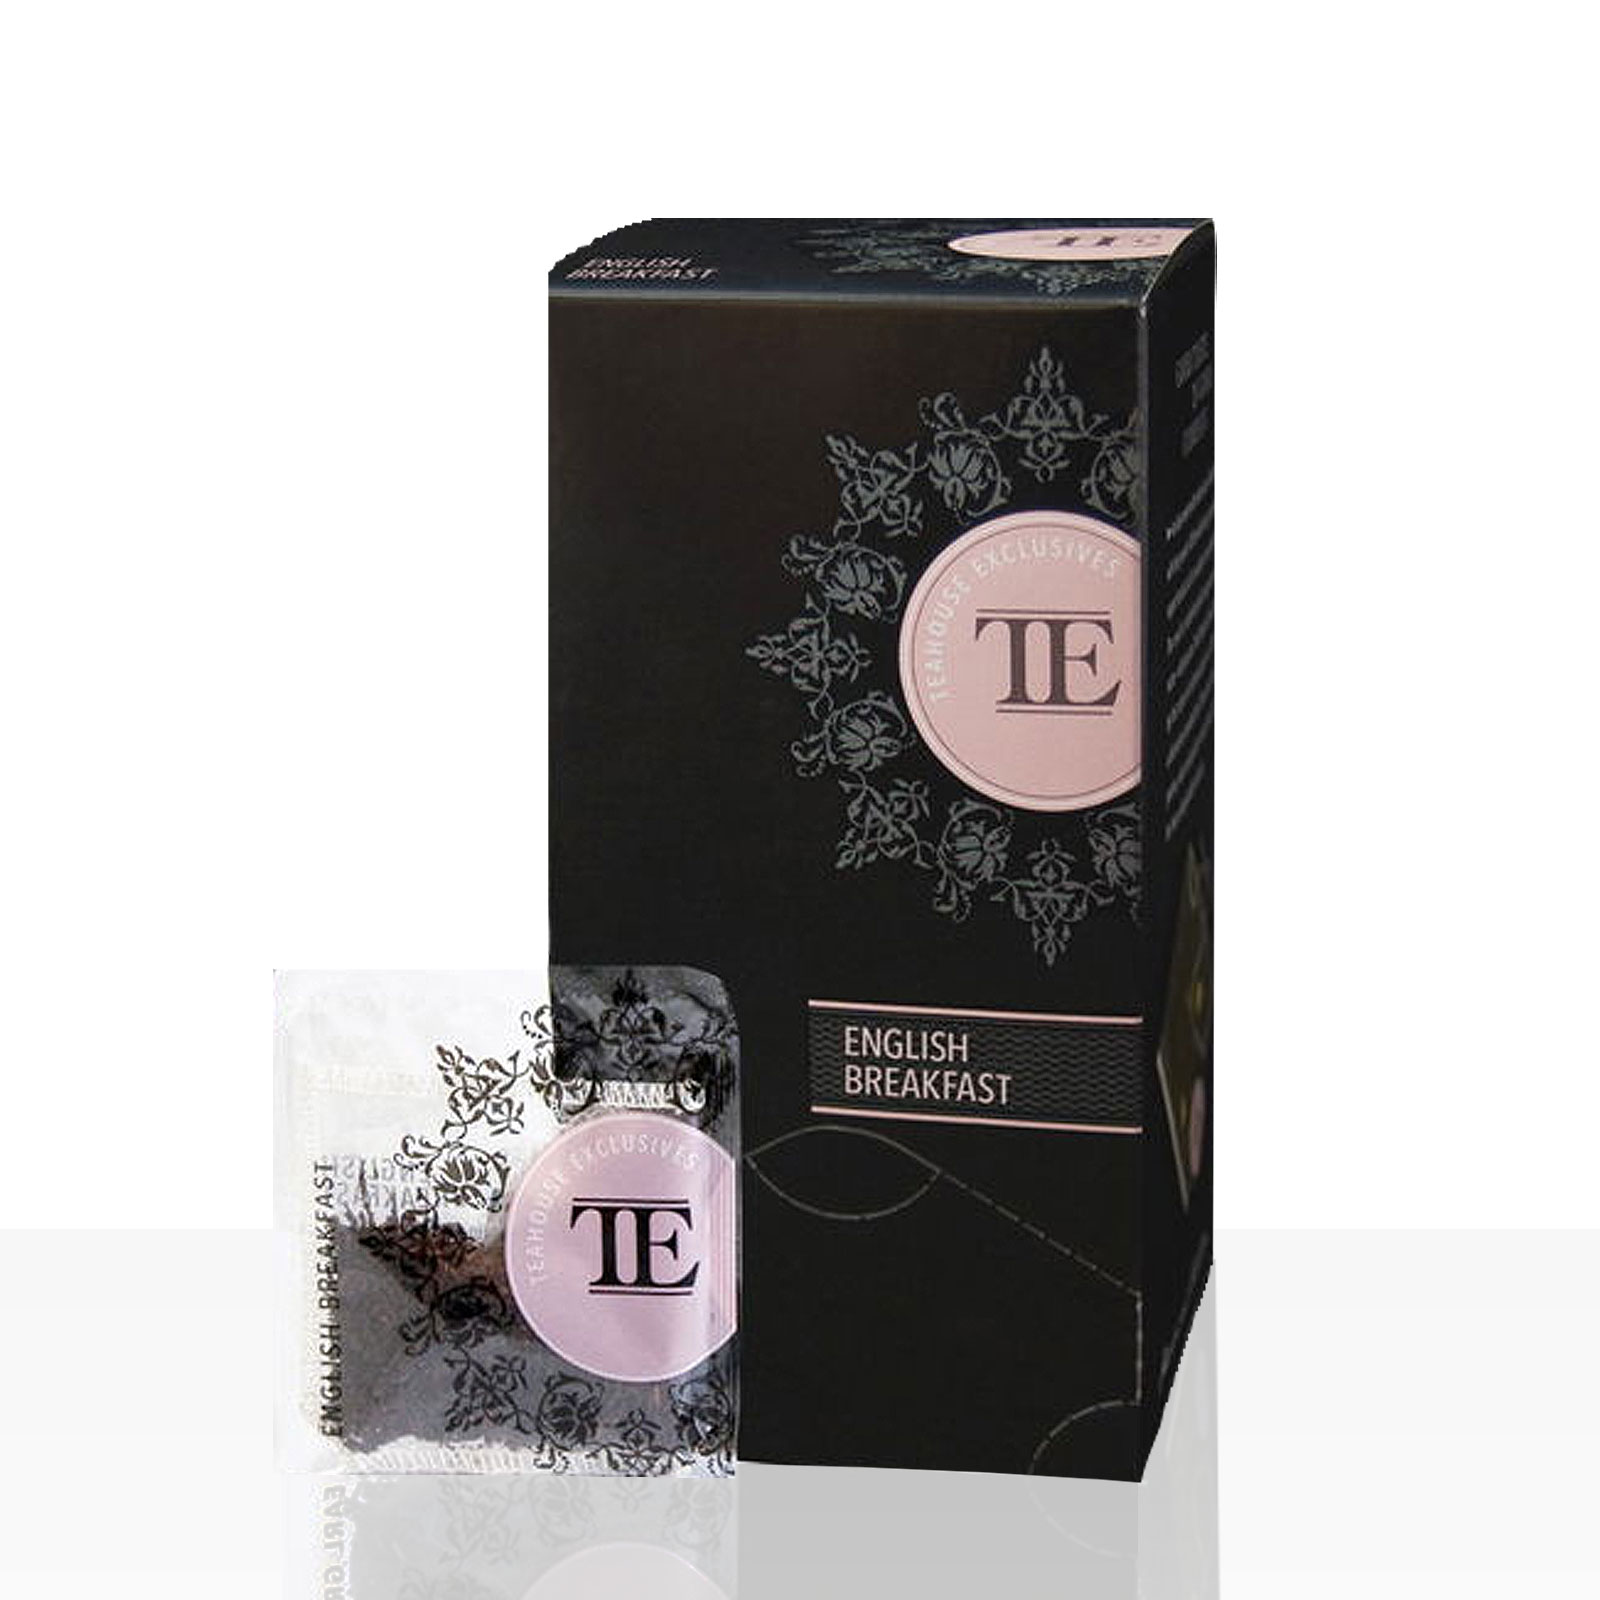 TE - Luxury Teahouse Exclusive English Breakfast 6 x 15 Beutel á 3,5g